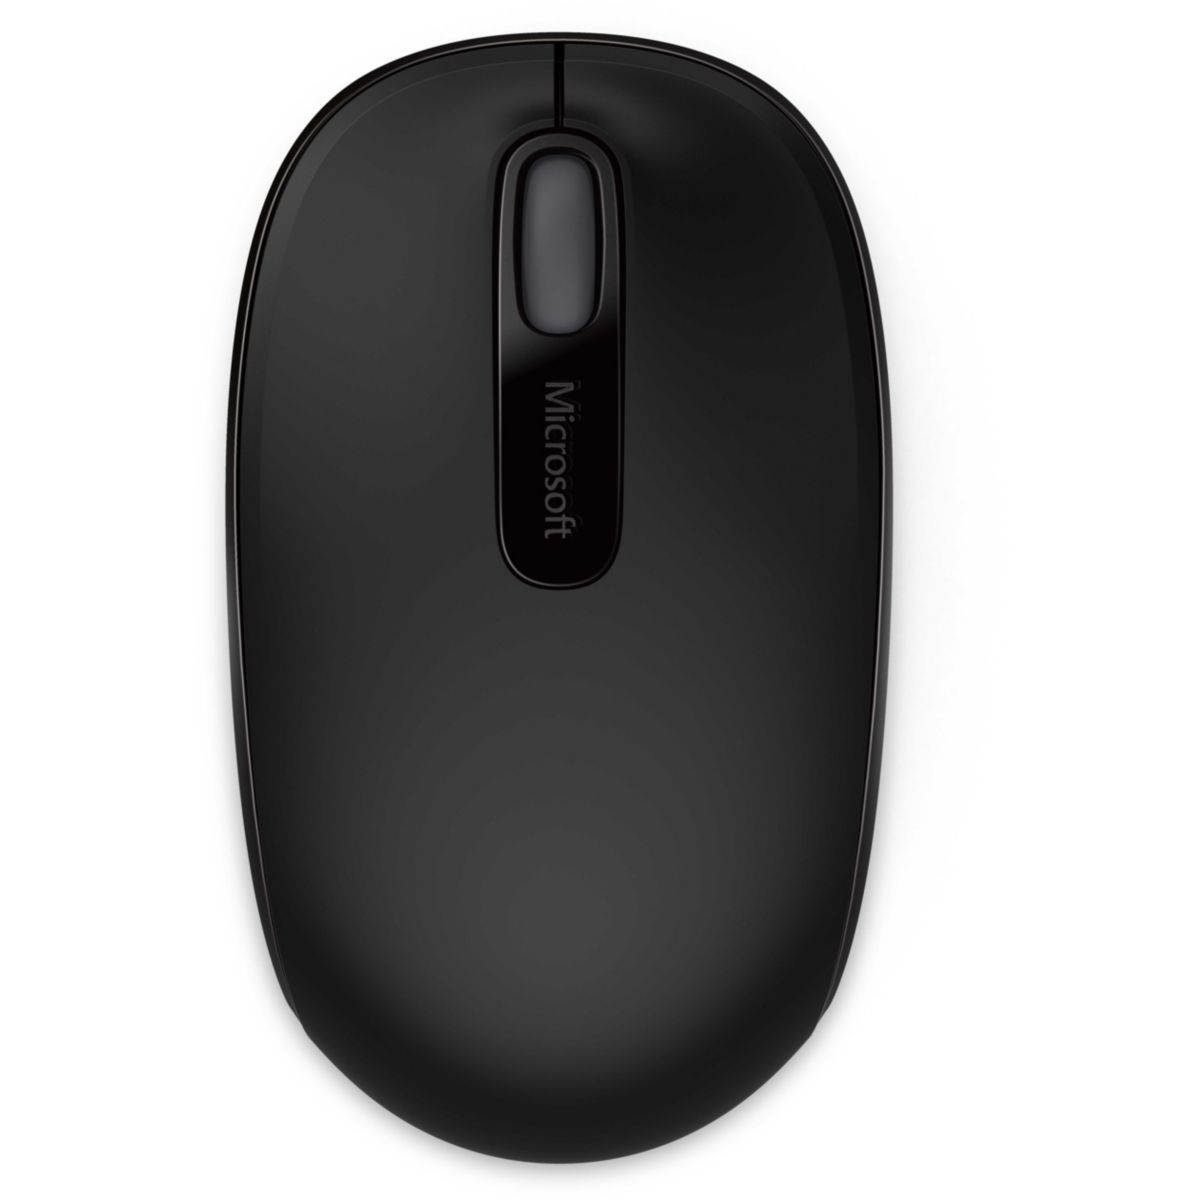 Souris sans fil MICROSOFT Wireless Mobile Mouse 1850 Noir